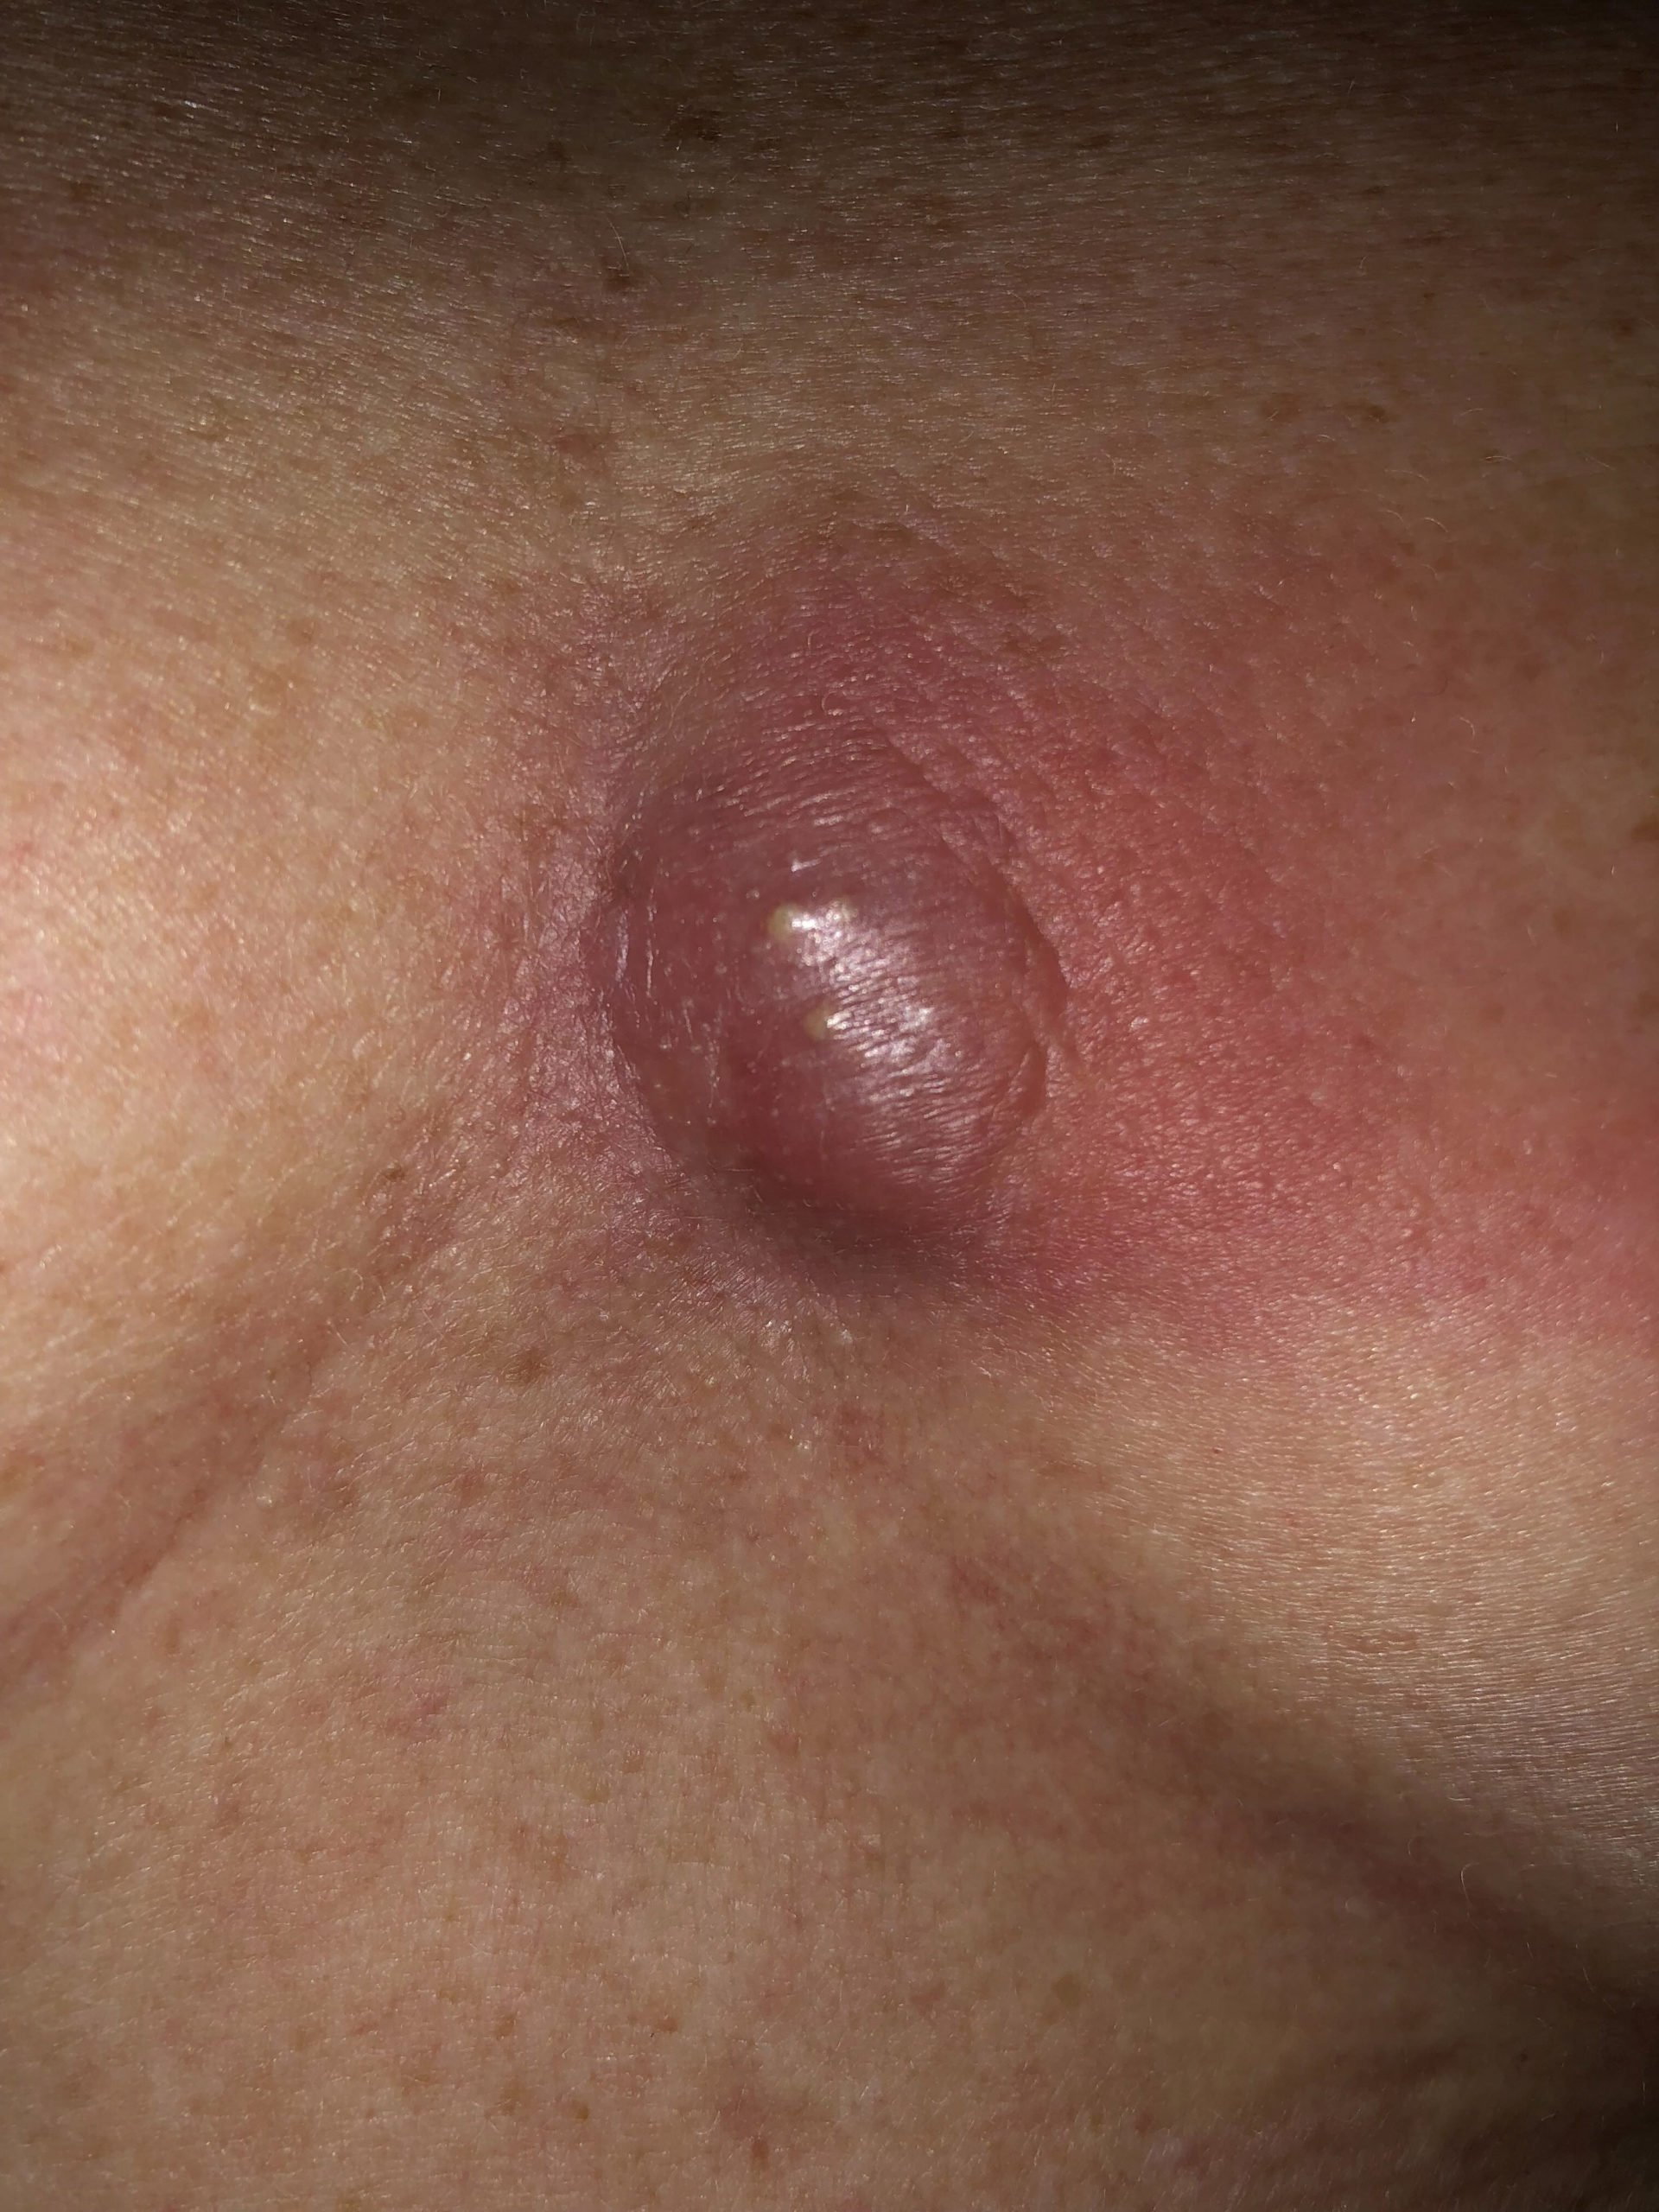 Red Lump Between The Breasts?